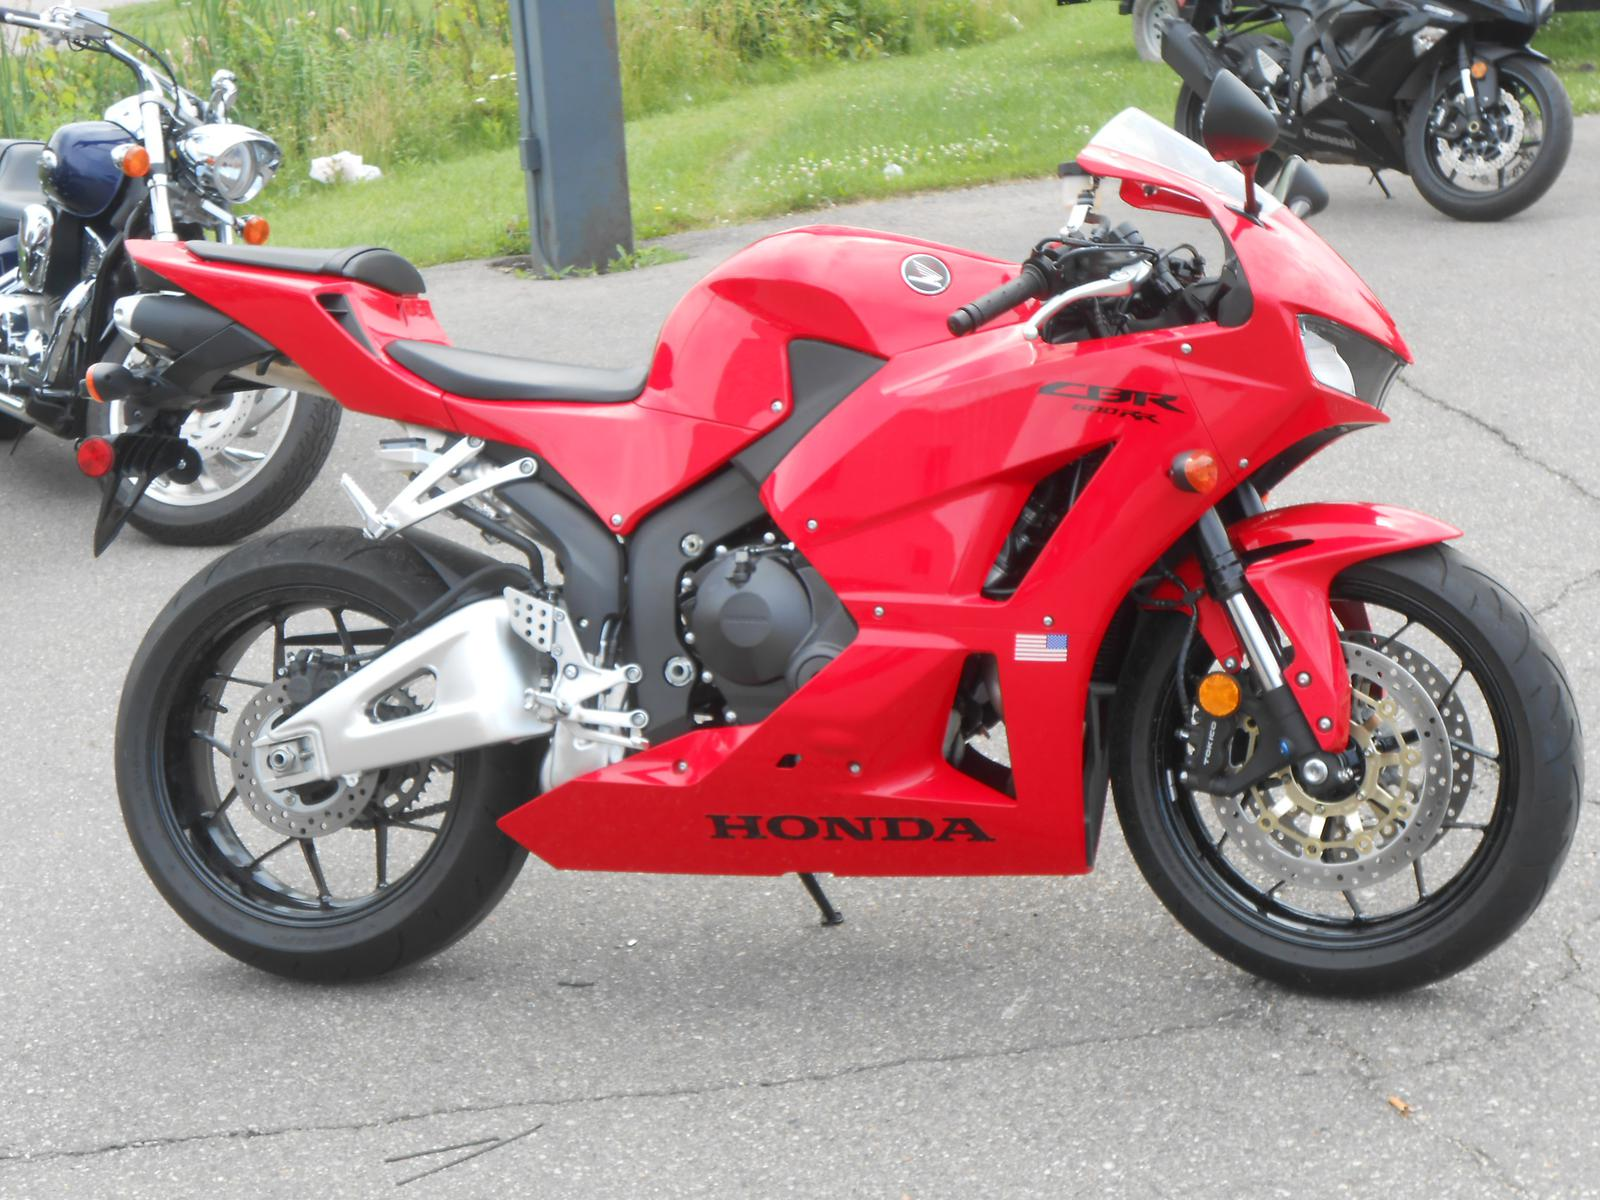 2013 honda cbr 600rr motorcycle from chesterfield mi for Victory motors chesterfield mi